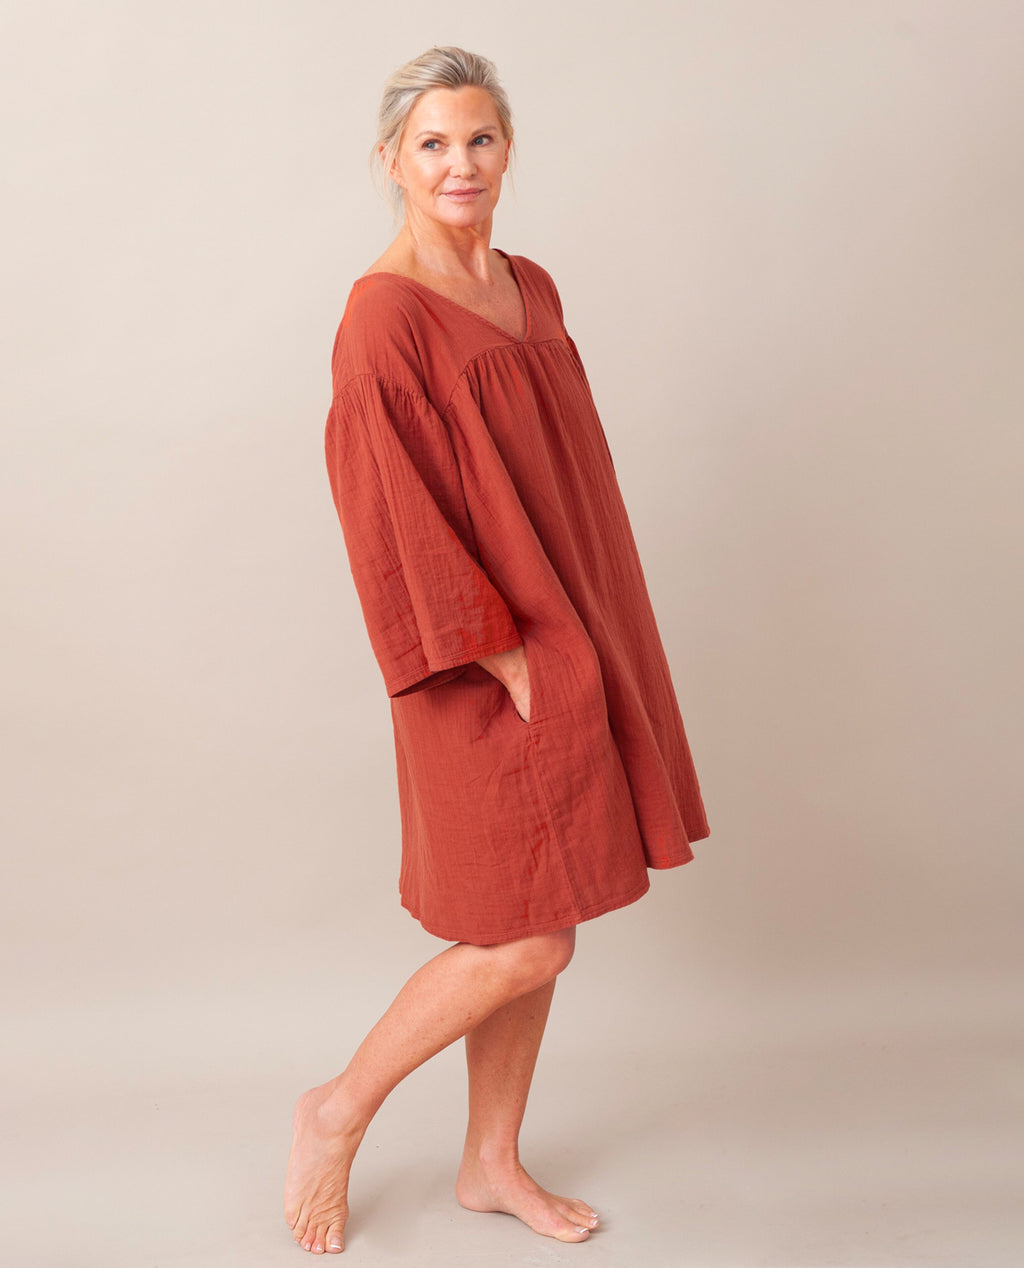 DYLLA Organic Cotton Nightie In Cinnamon